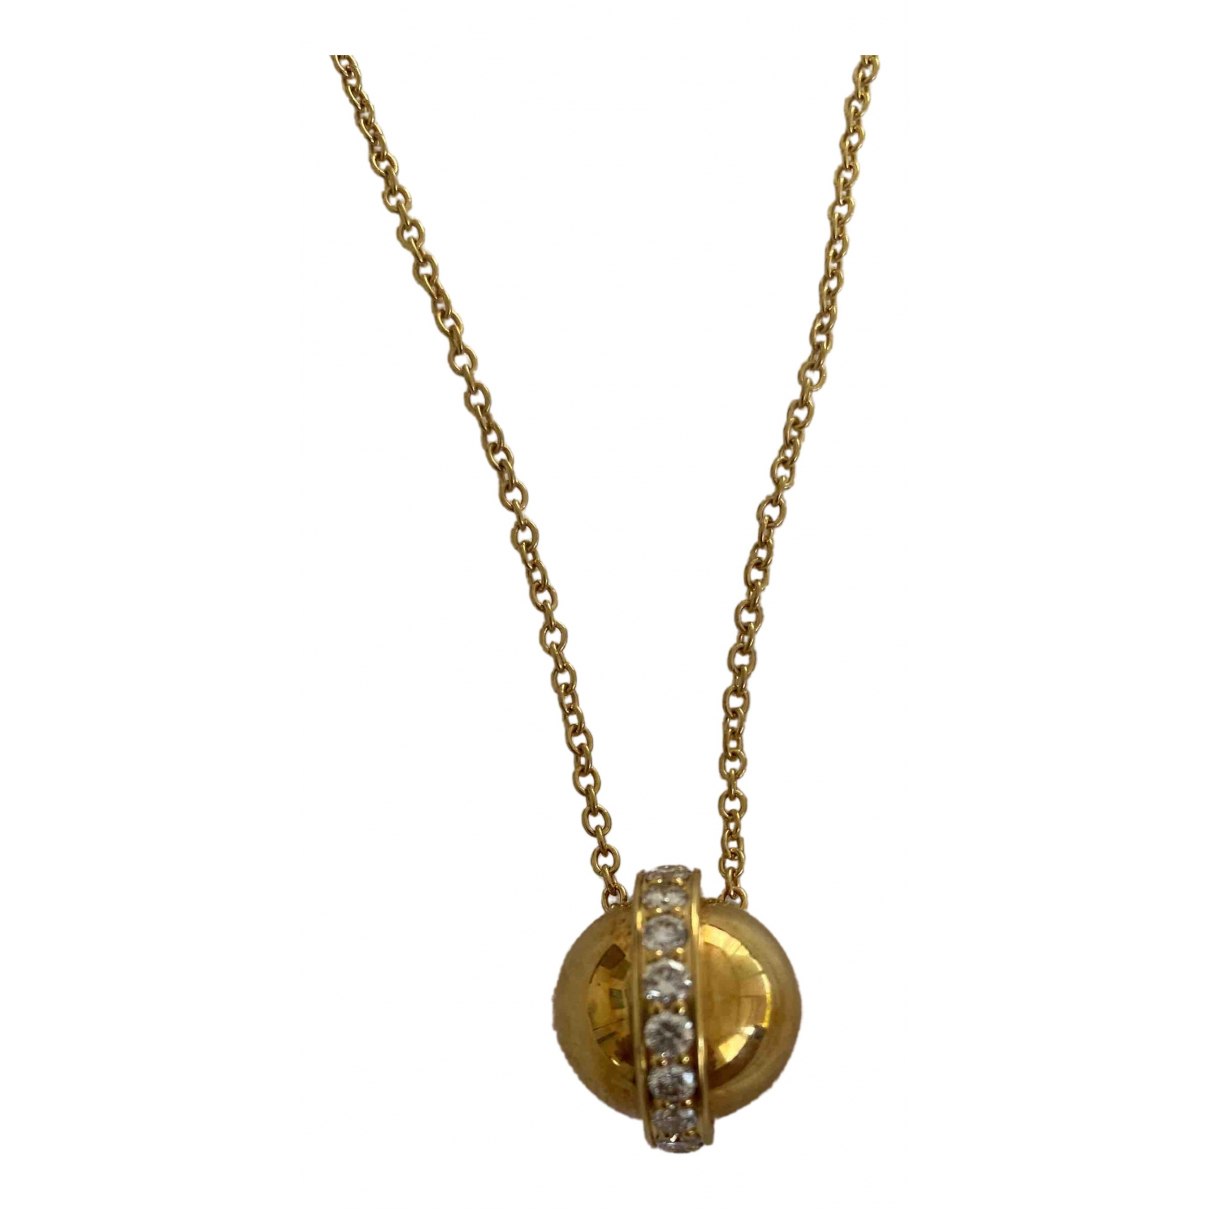 Piaget \N Yellow gold necklace for Women \N